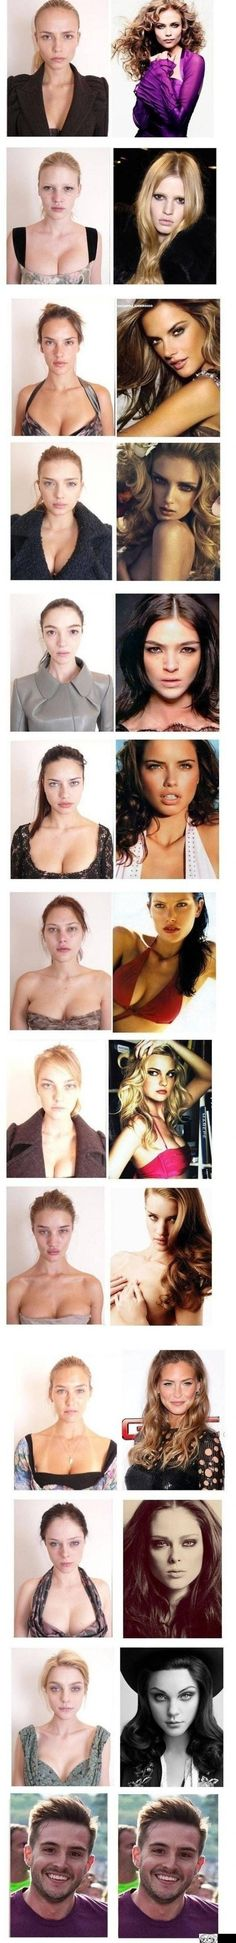 So, moral of the story... They're all hideous and have huge boobs. Based on that criteria, I'm a freaking SUPER MODEL!!!! :D